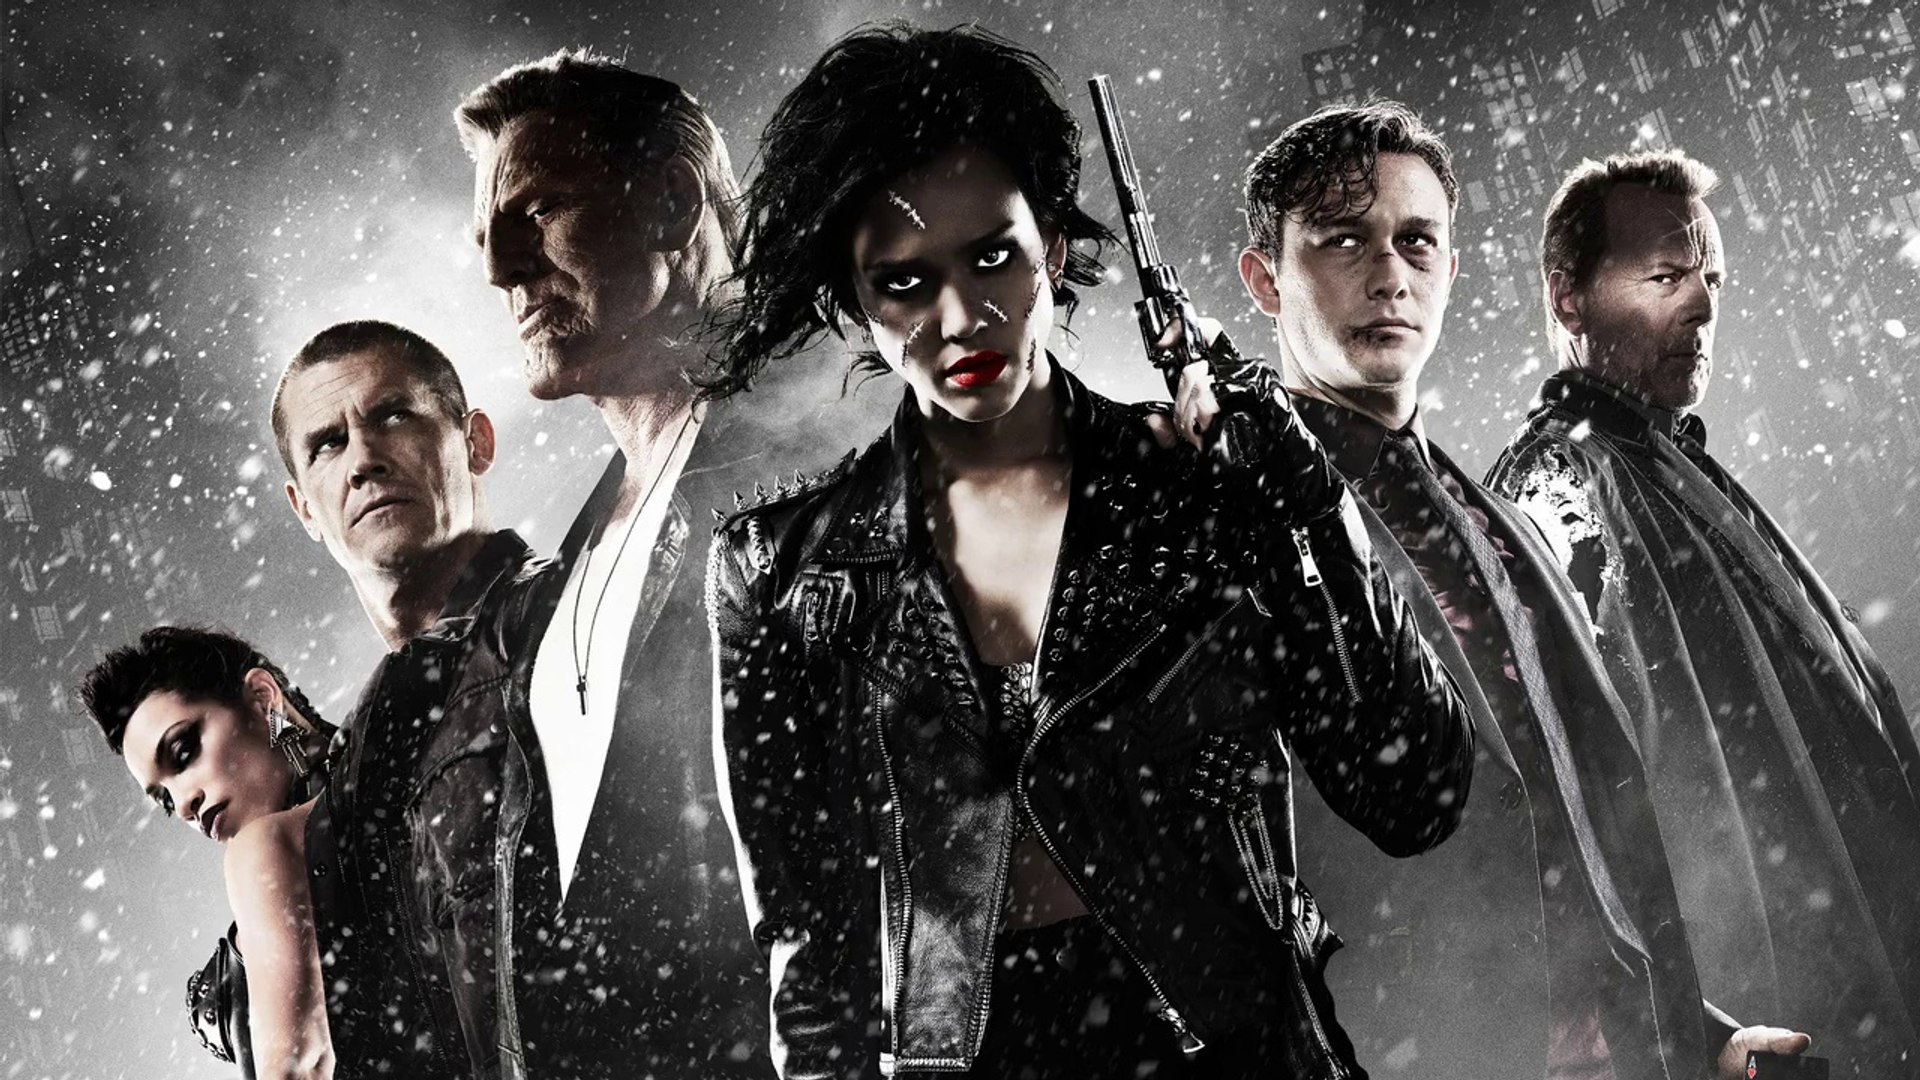 ✹ ✺FREE STREAMING UPTODATE MOVIE✹ ✺Sin City: A Dame to Kill For 2014, #Sin City: A Dame to Kill For